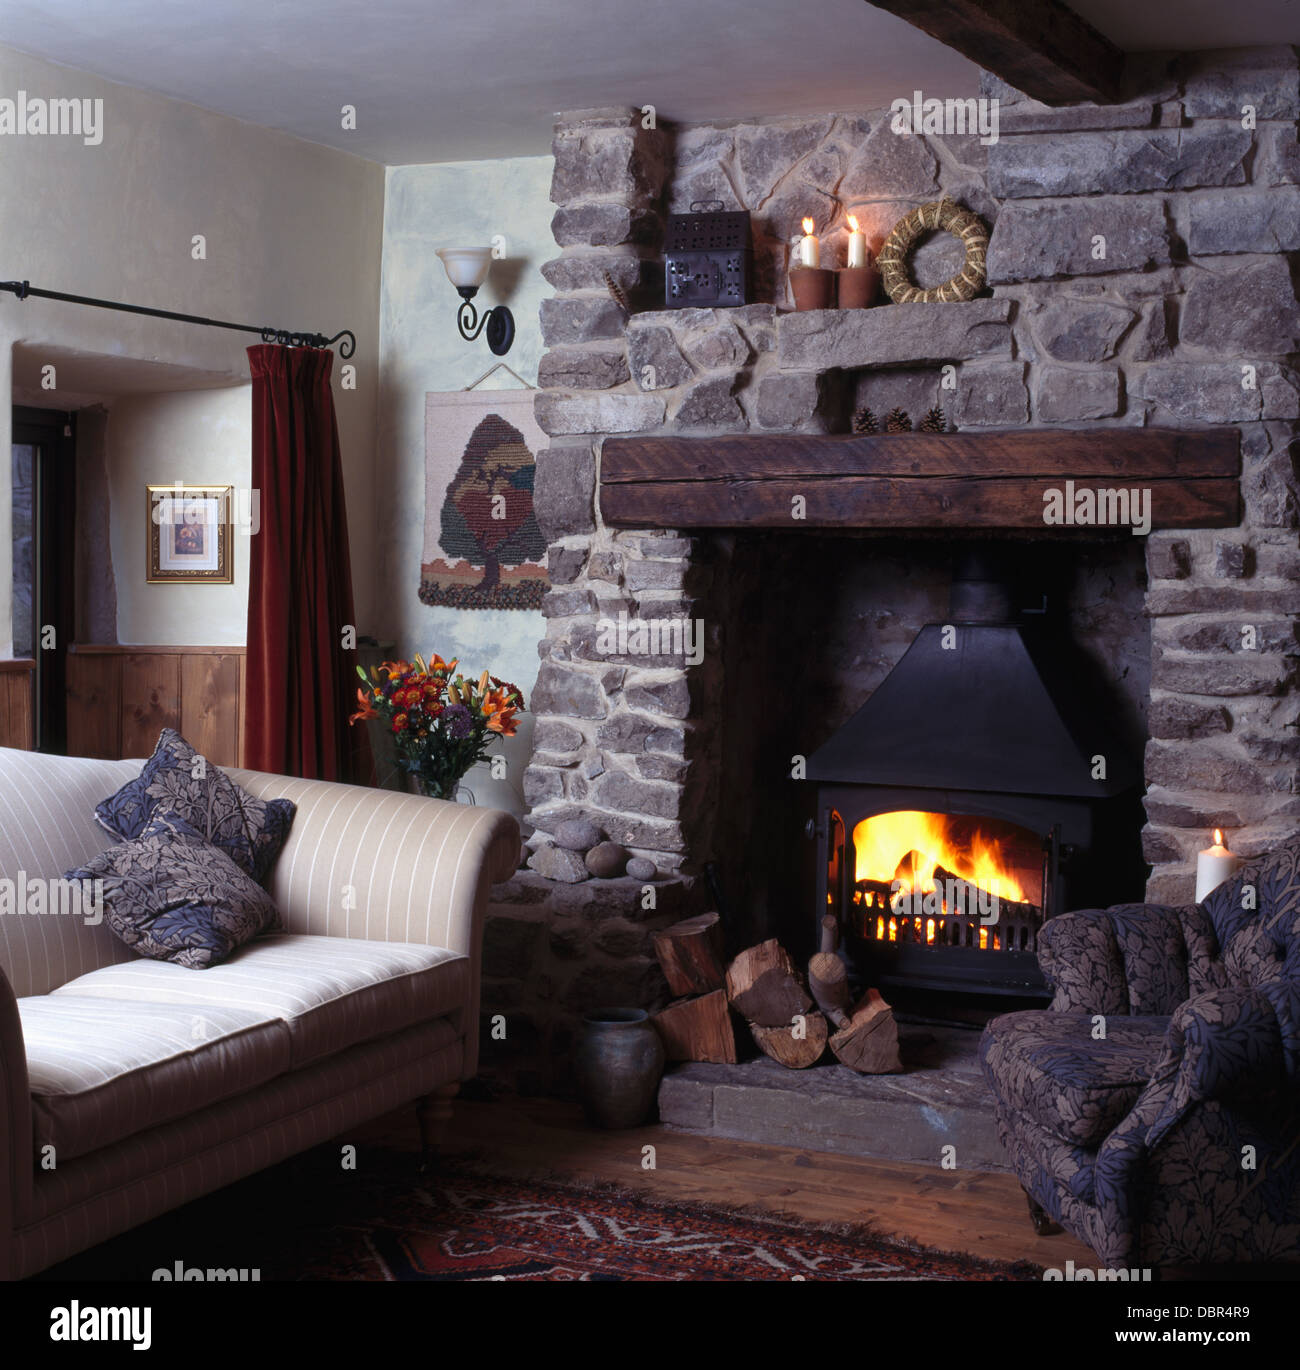 Small Beige Sofa Beside Fireplace With Lighted Wood